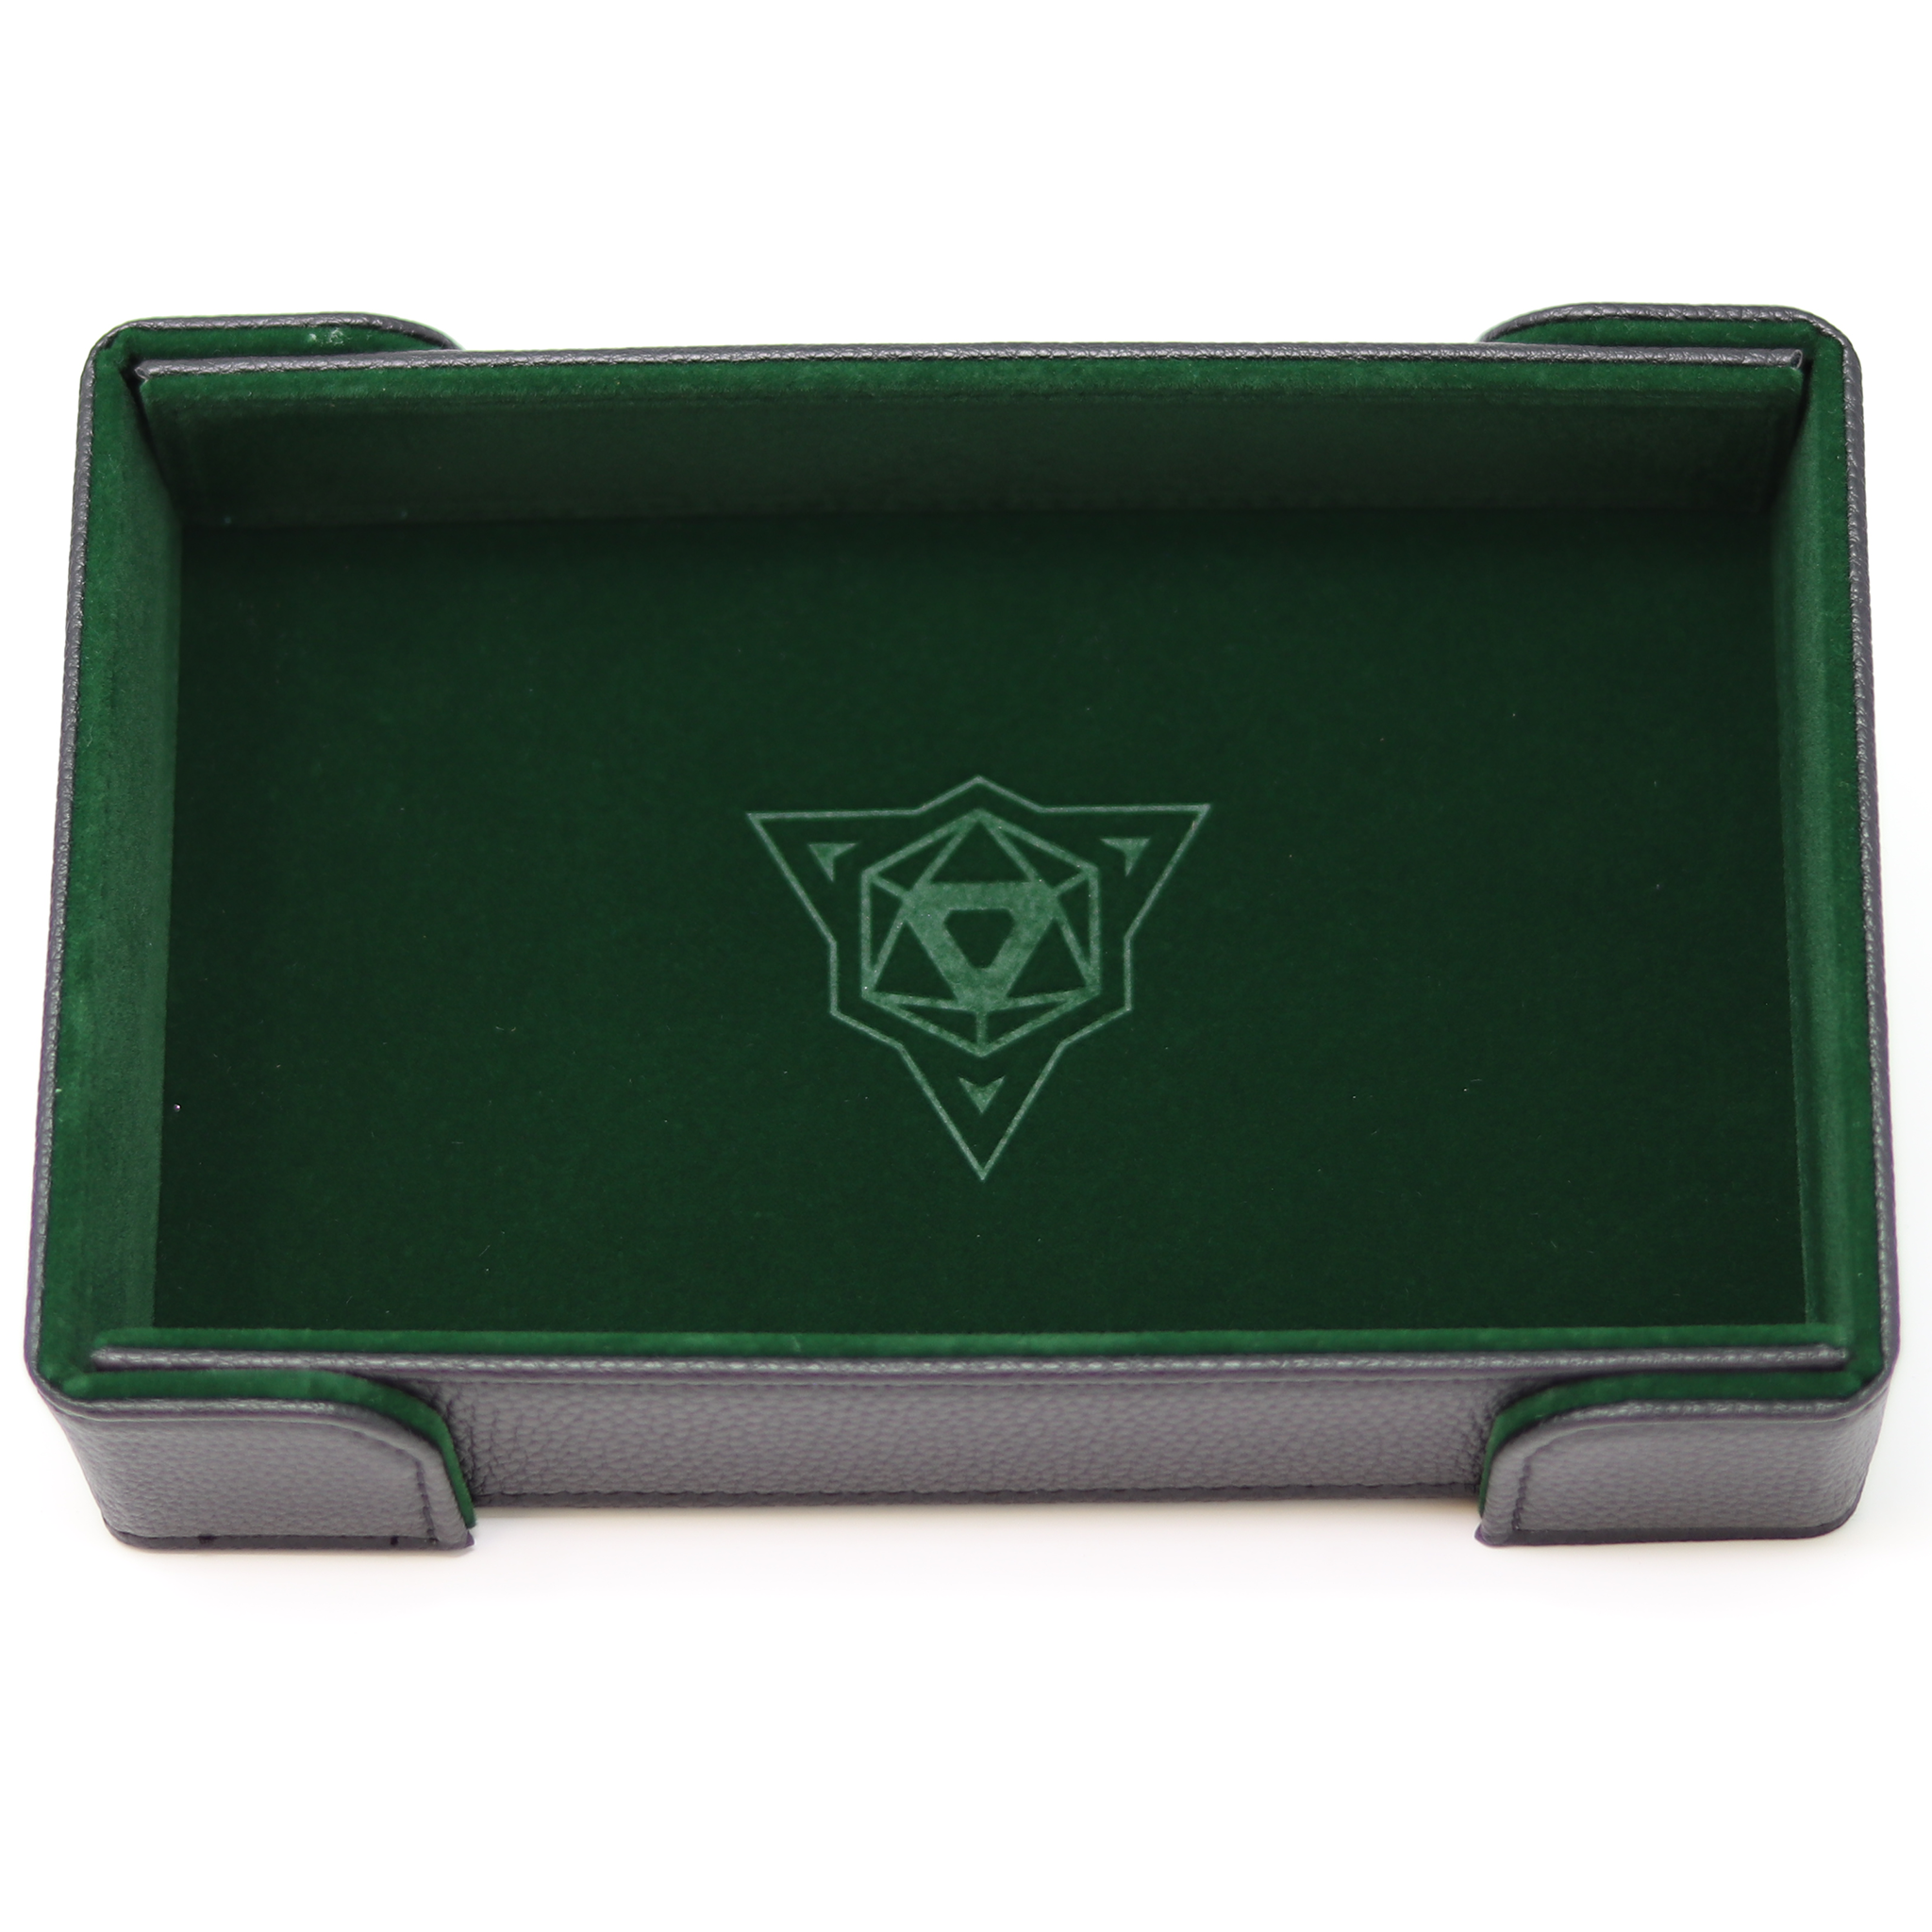 Die Hard Magnetic Rectangle Tray w/ Green Velvet